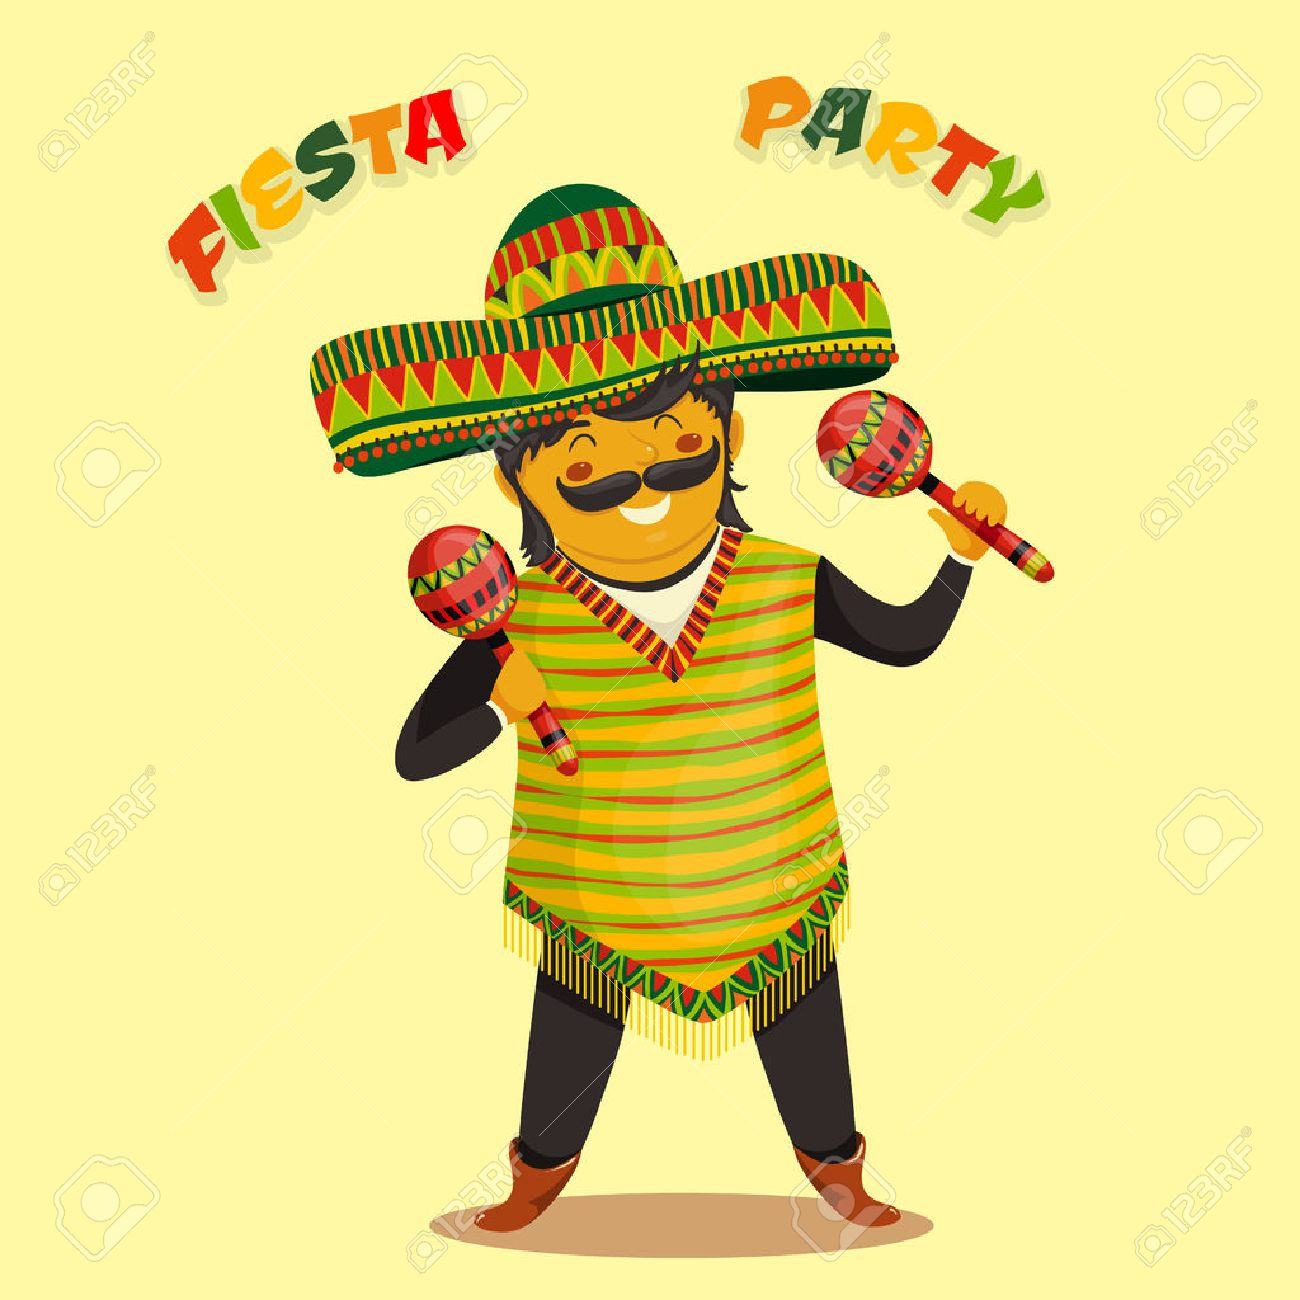 Mexican Fiesta Party Invitation with Mexican man playing the maracas in a sombrero. Hand drawn illustration poster. Flyer or greeting card template - 43853166